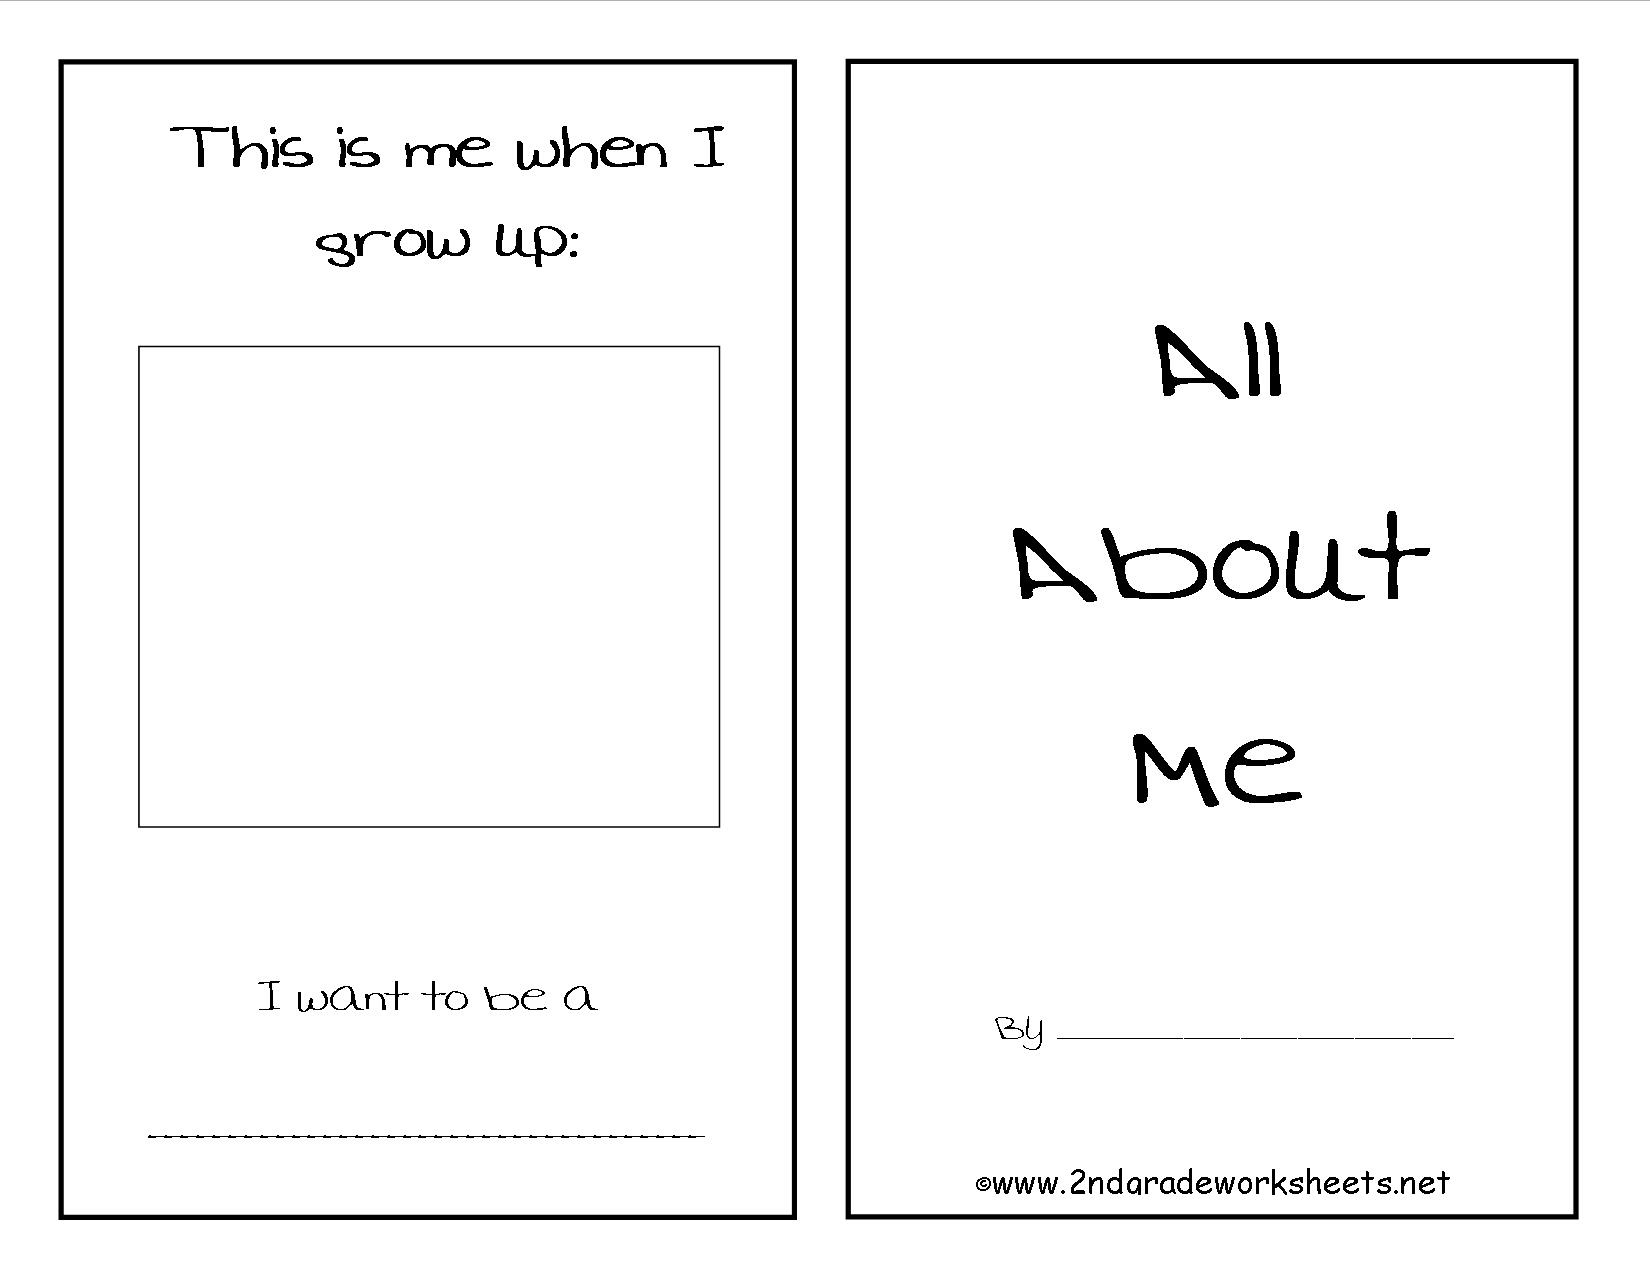 Free Back To School Worksheets And Printouts - Free Printable | Free Printable School Worksheets